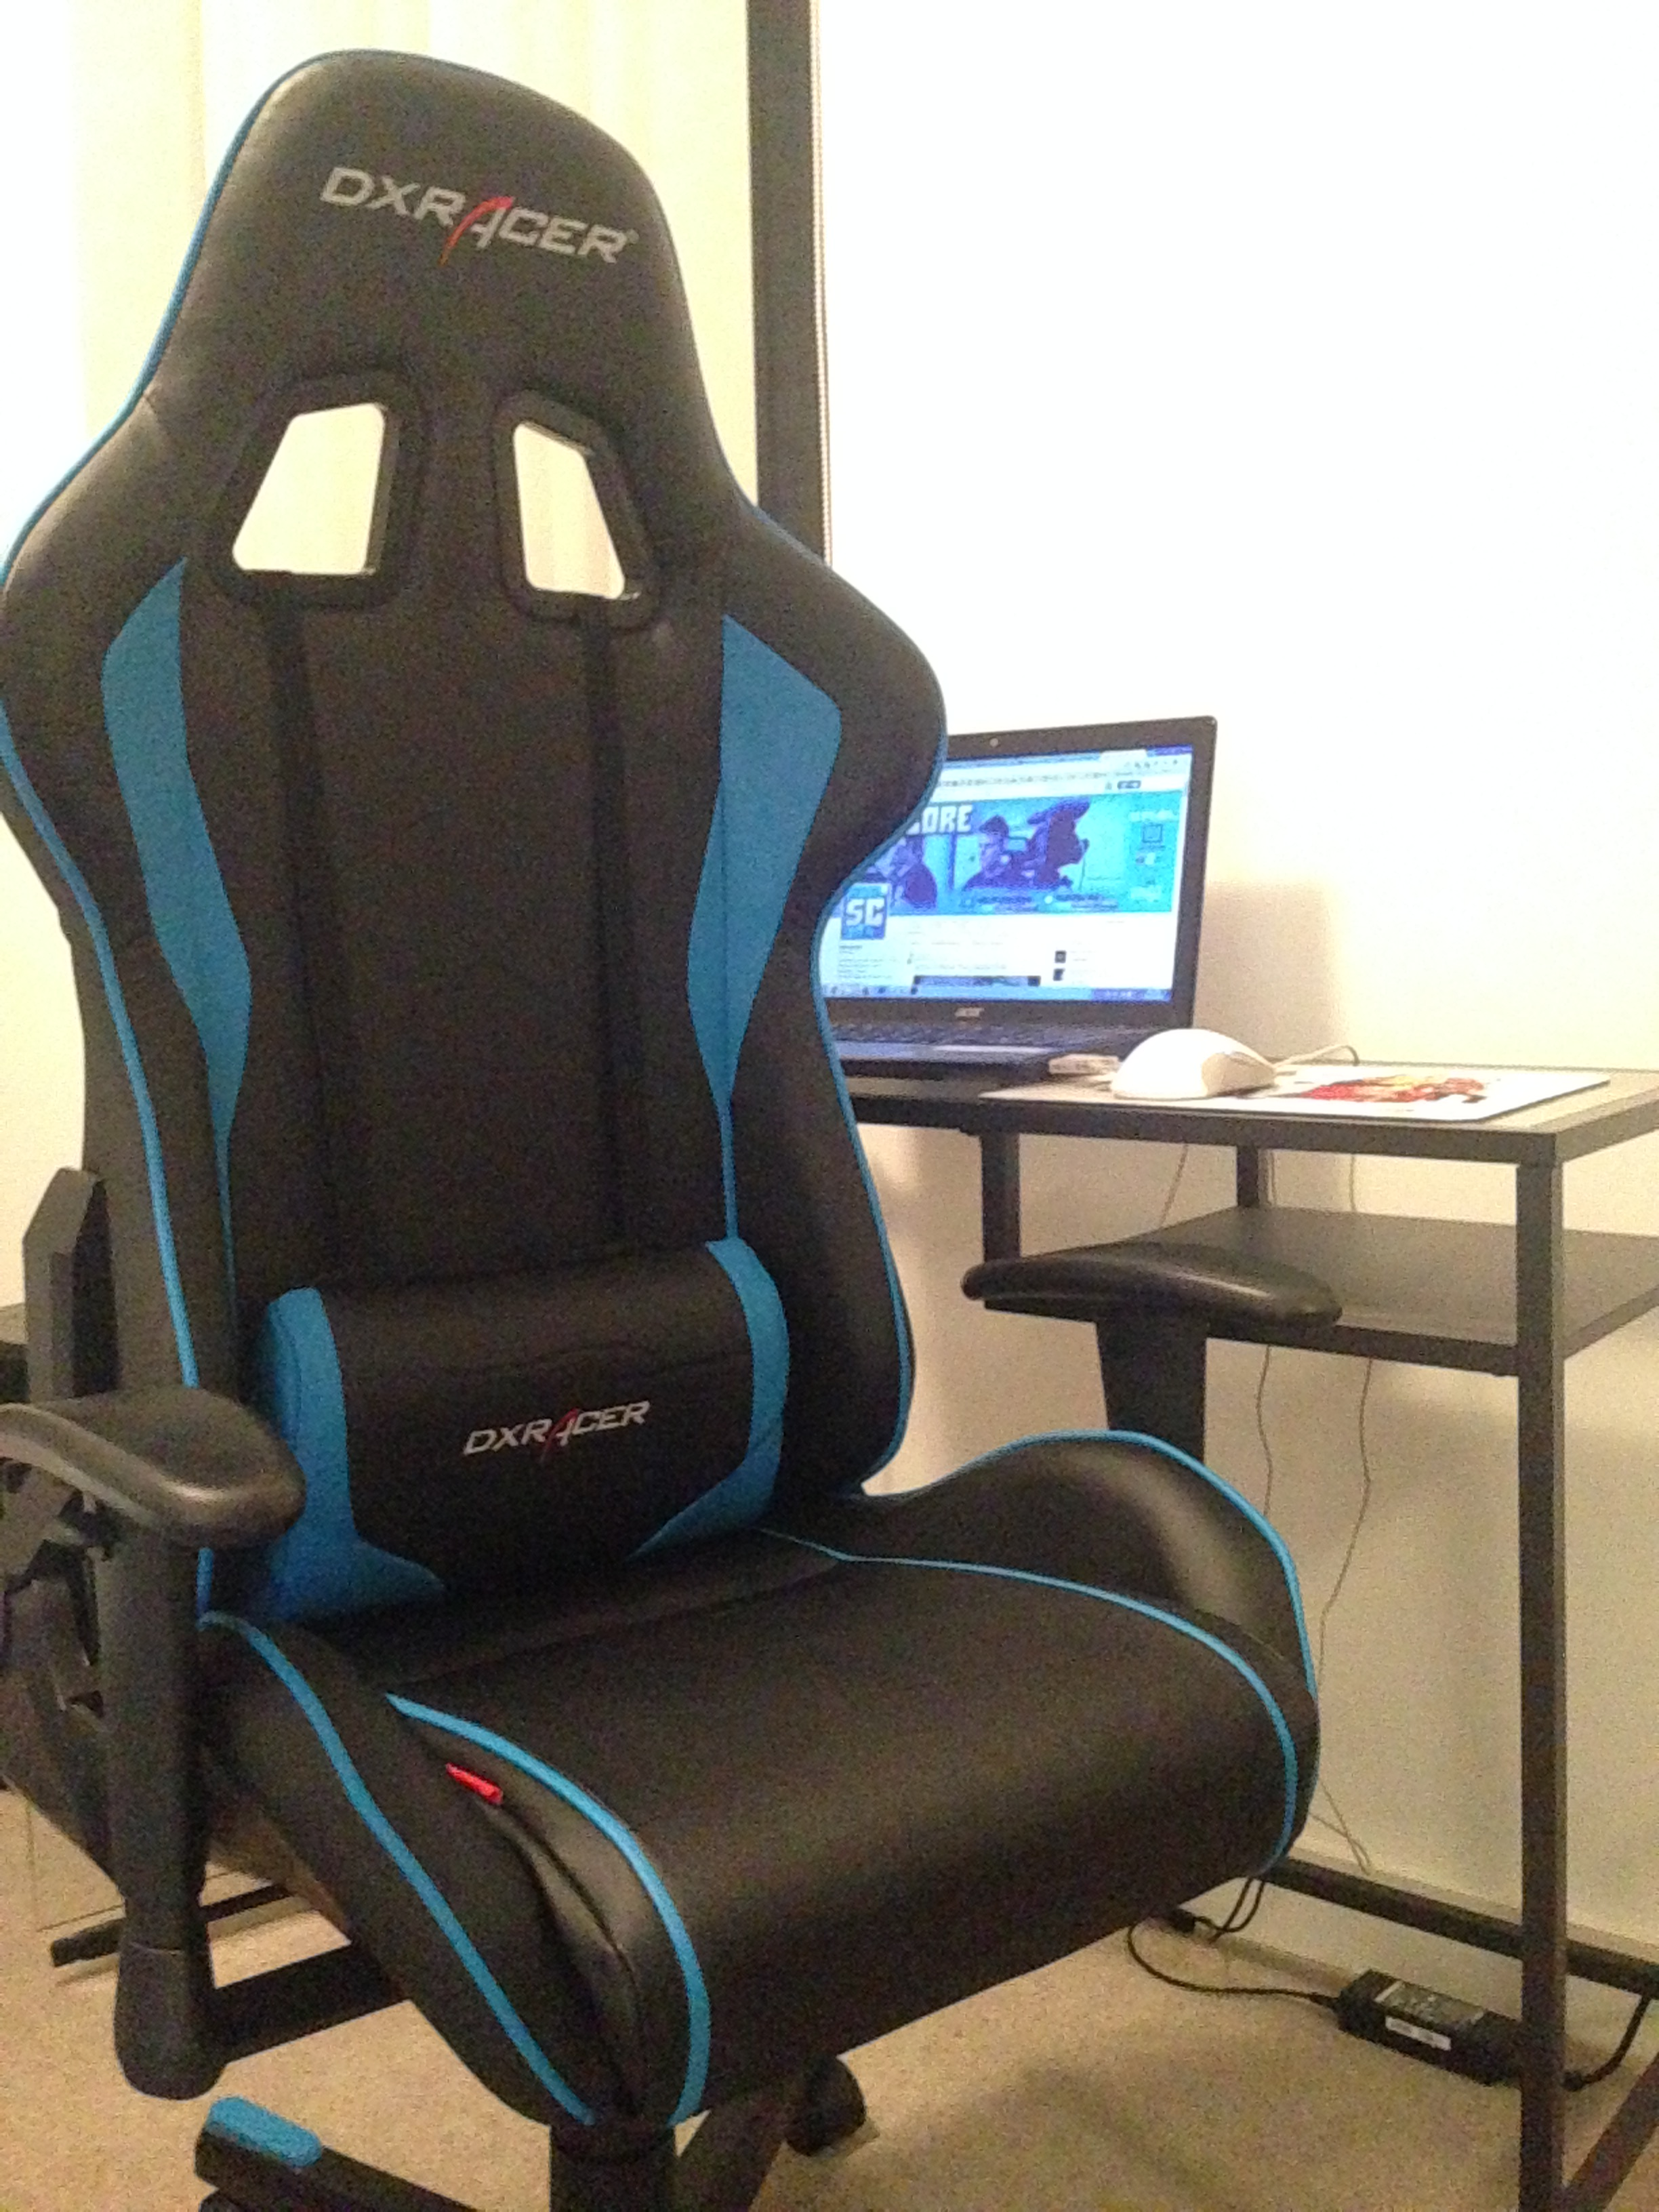 dxracer gaming chairs chair cover hire darlington review  is it worth silentc0re